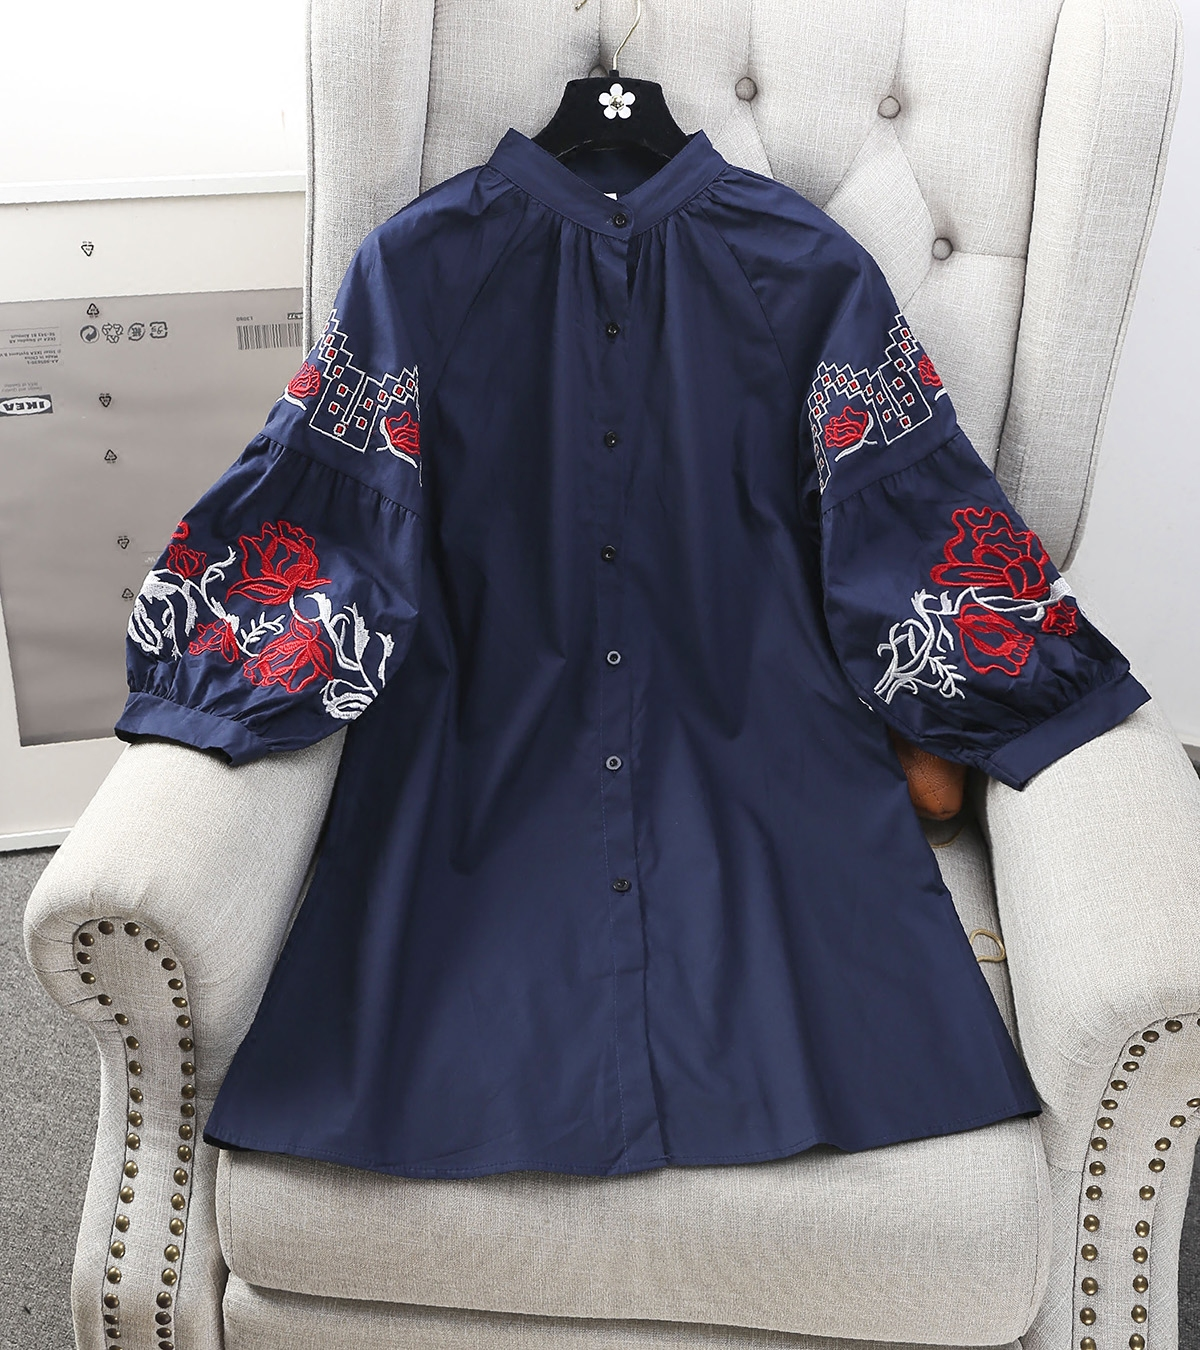 Winter Spring New Arrival Women Fashion Broadcloth Embroidery Floral Long Shirt Female Original Casual Half Puff Sleeve Blouse(China (Mainland))